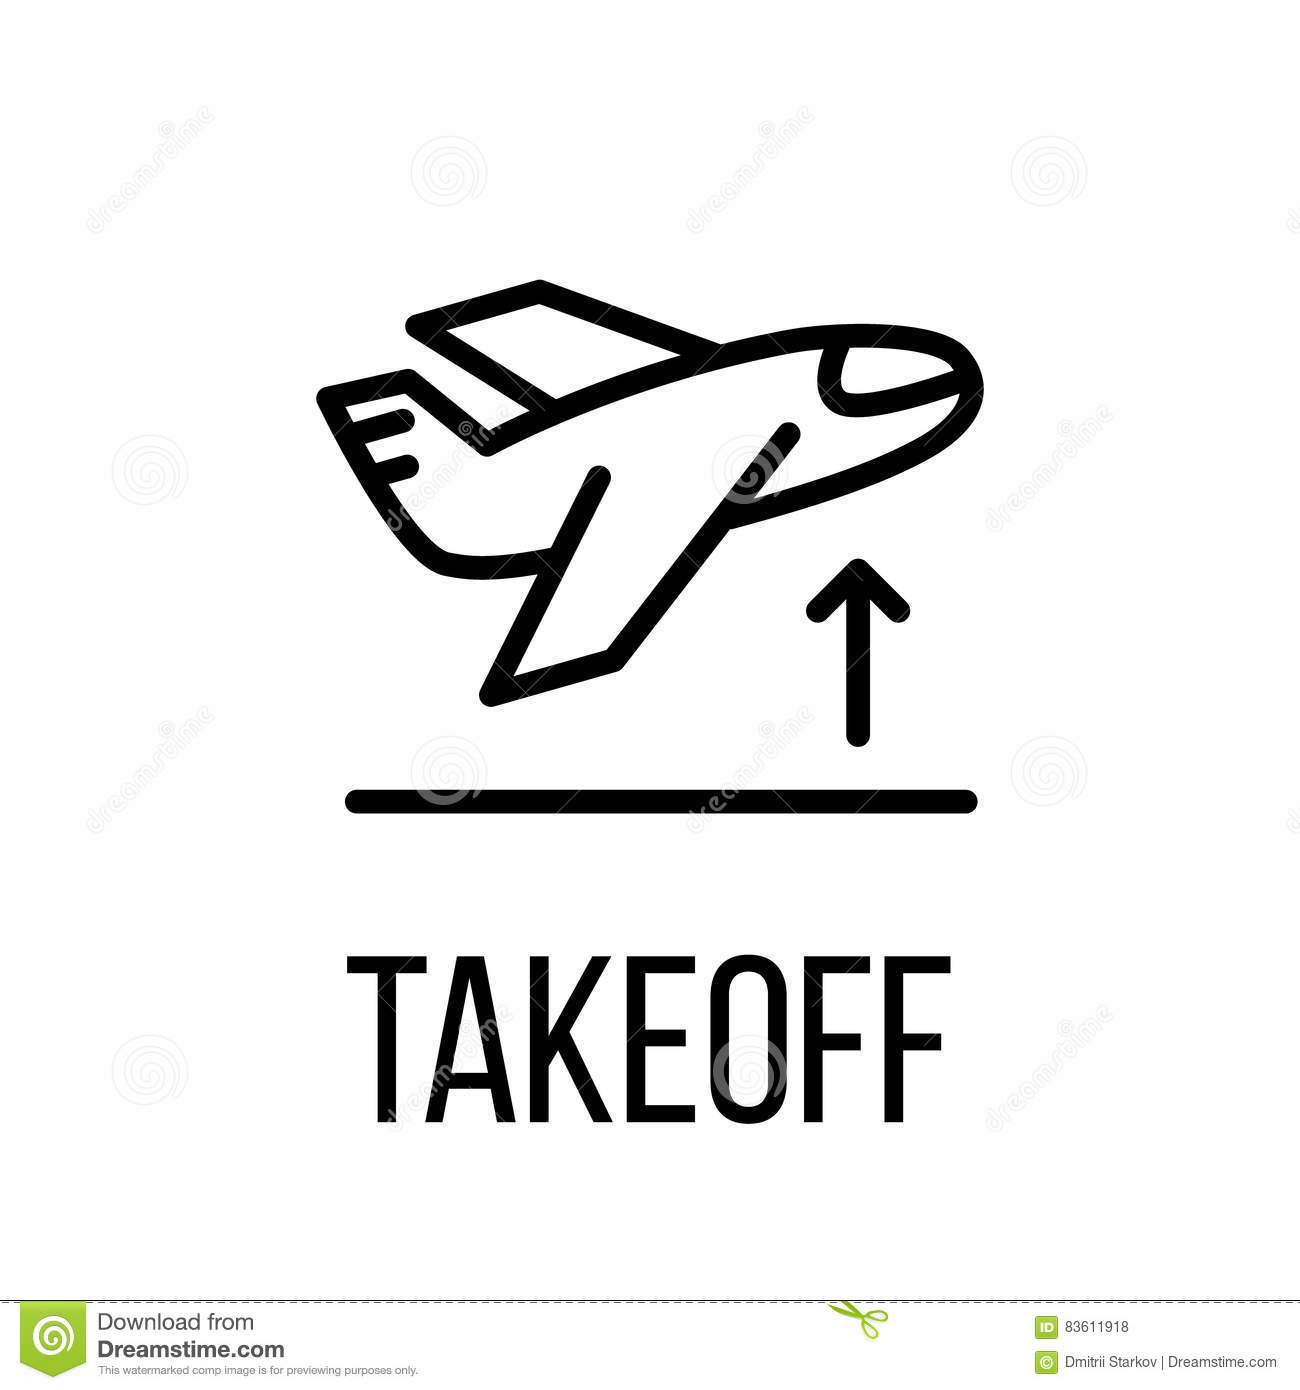 Takeoff icon or logo in modern line style.